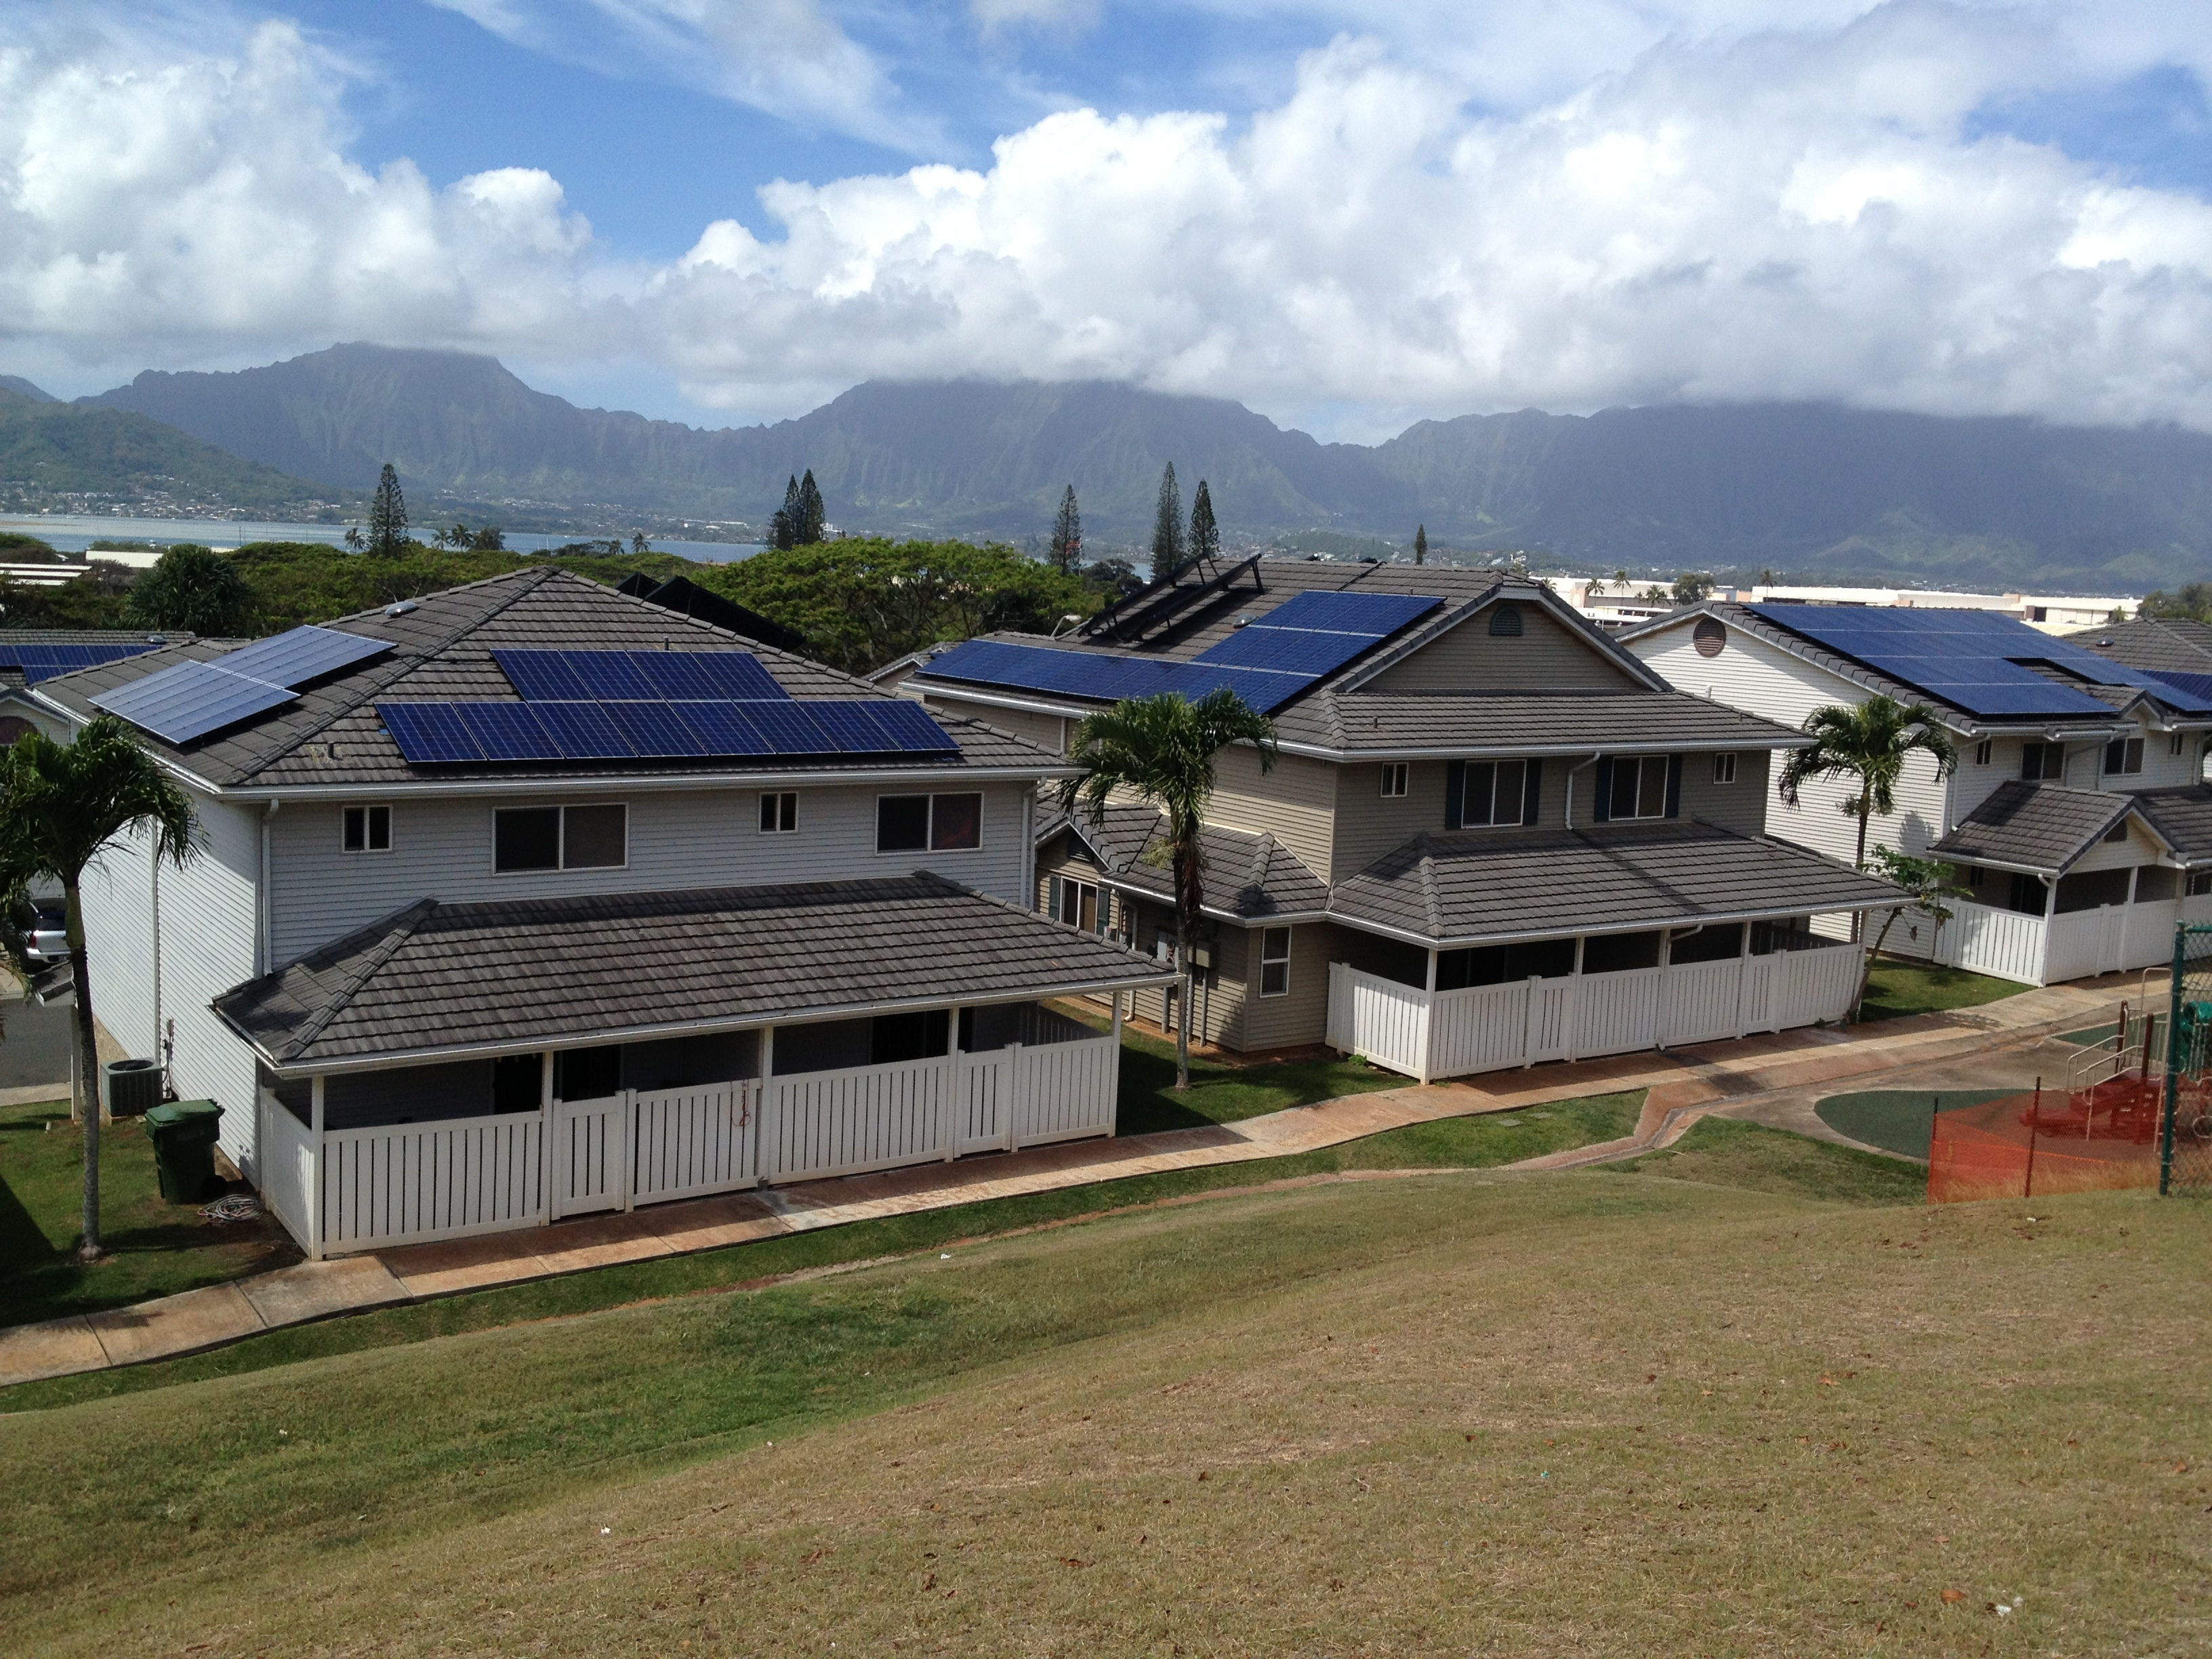 Solarcity Forest City Team To Install Solar On Up 6500 Homes In Wiring A House Arrays Atop Military Housing At Marine Corps Base Hawaii Part Of